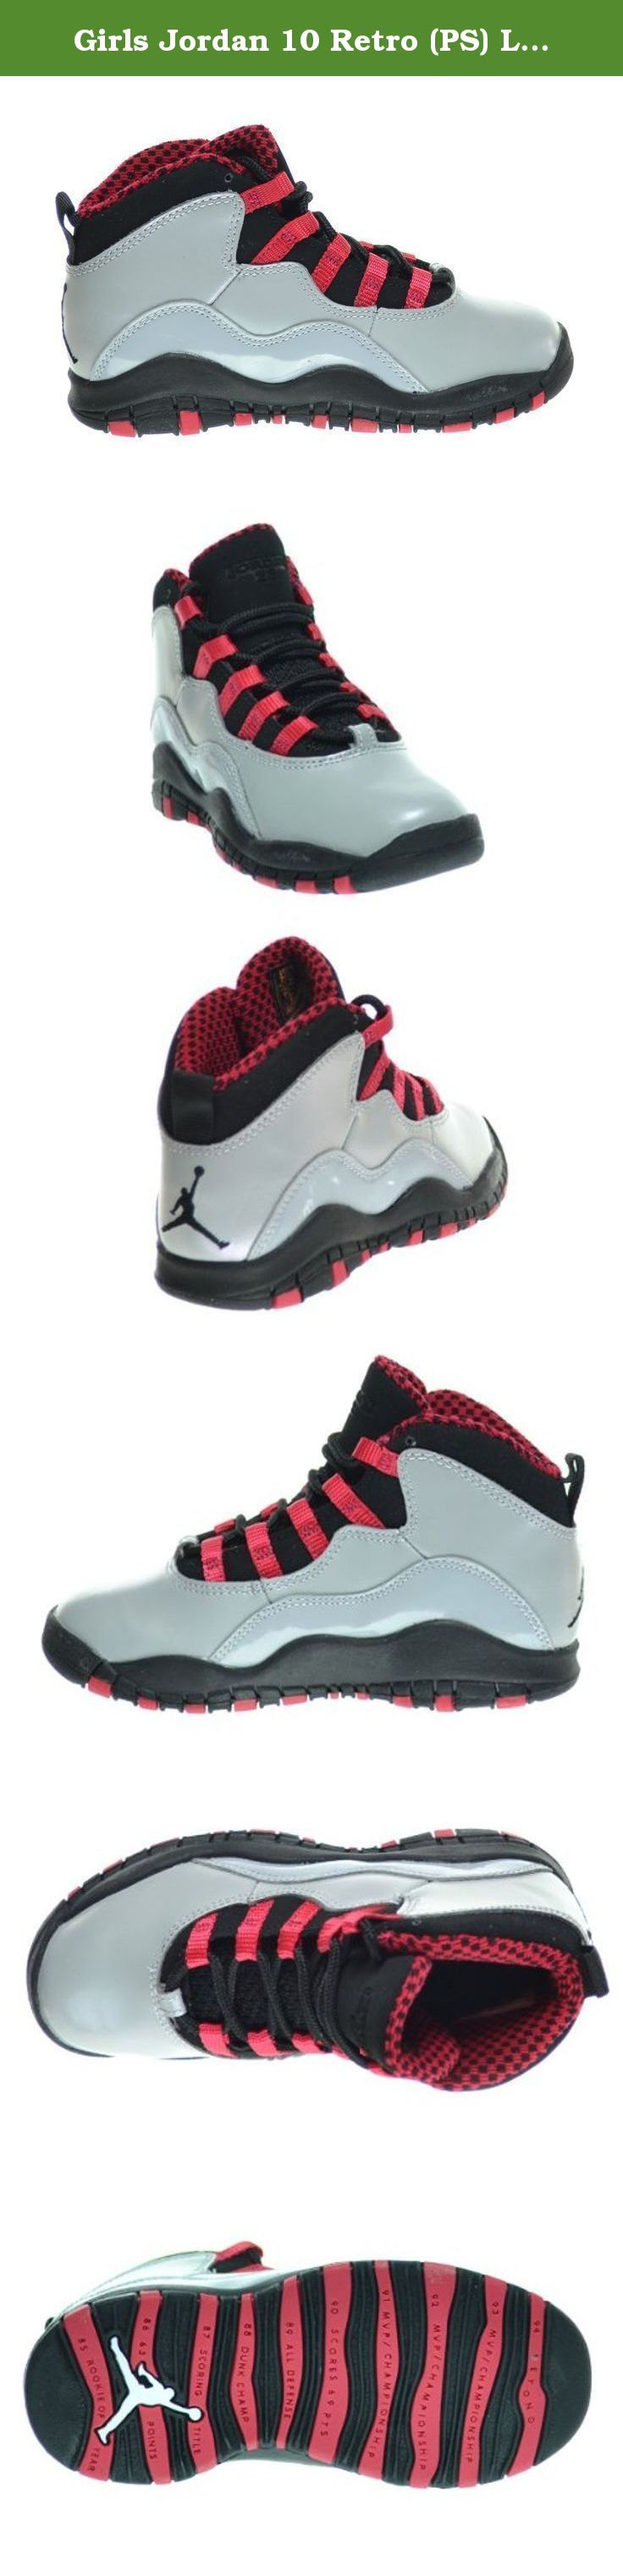 Girls Jordan 10 Retro (PS) Little Kids Basketball Shoes Wolf Grey/Black-Legion Red 487212-009. The Jordan Retro 10 (X) Shoes might remind you of the Air Jordan X. With leather upper and some suede for durability, the retro Jordan's are fairly simple and straightforward. A Jumpman logo on the back and outsole adds style, and you can't forget the outsole that lists Jordan's accomplishments.